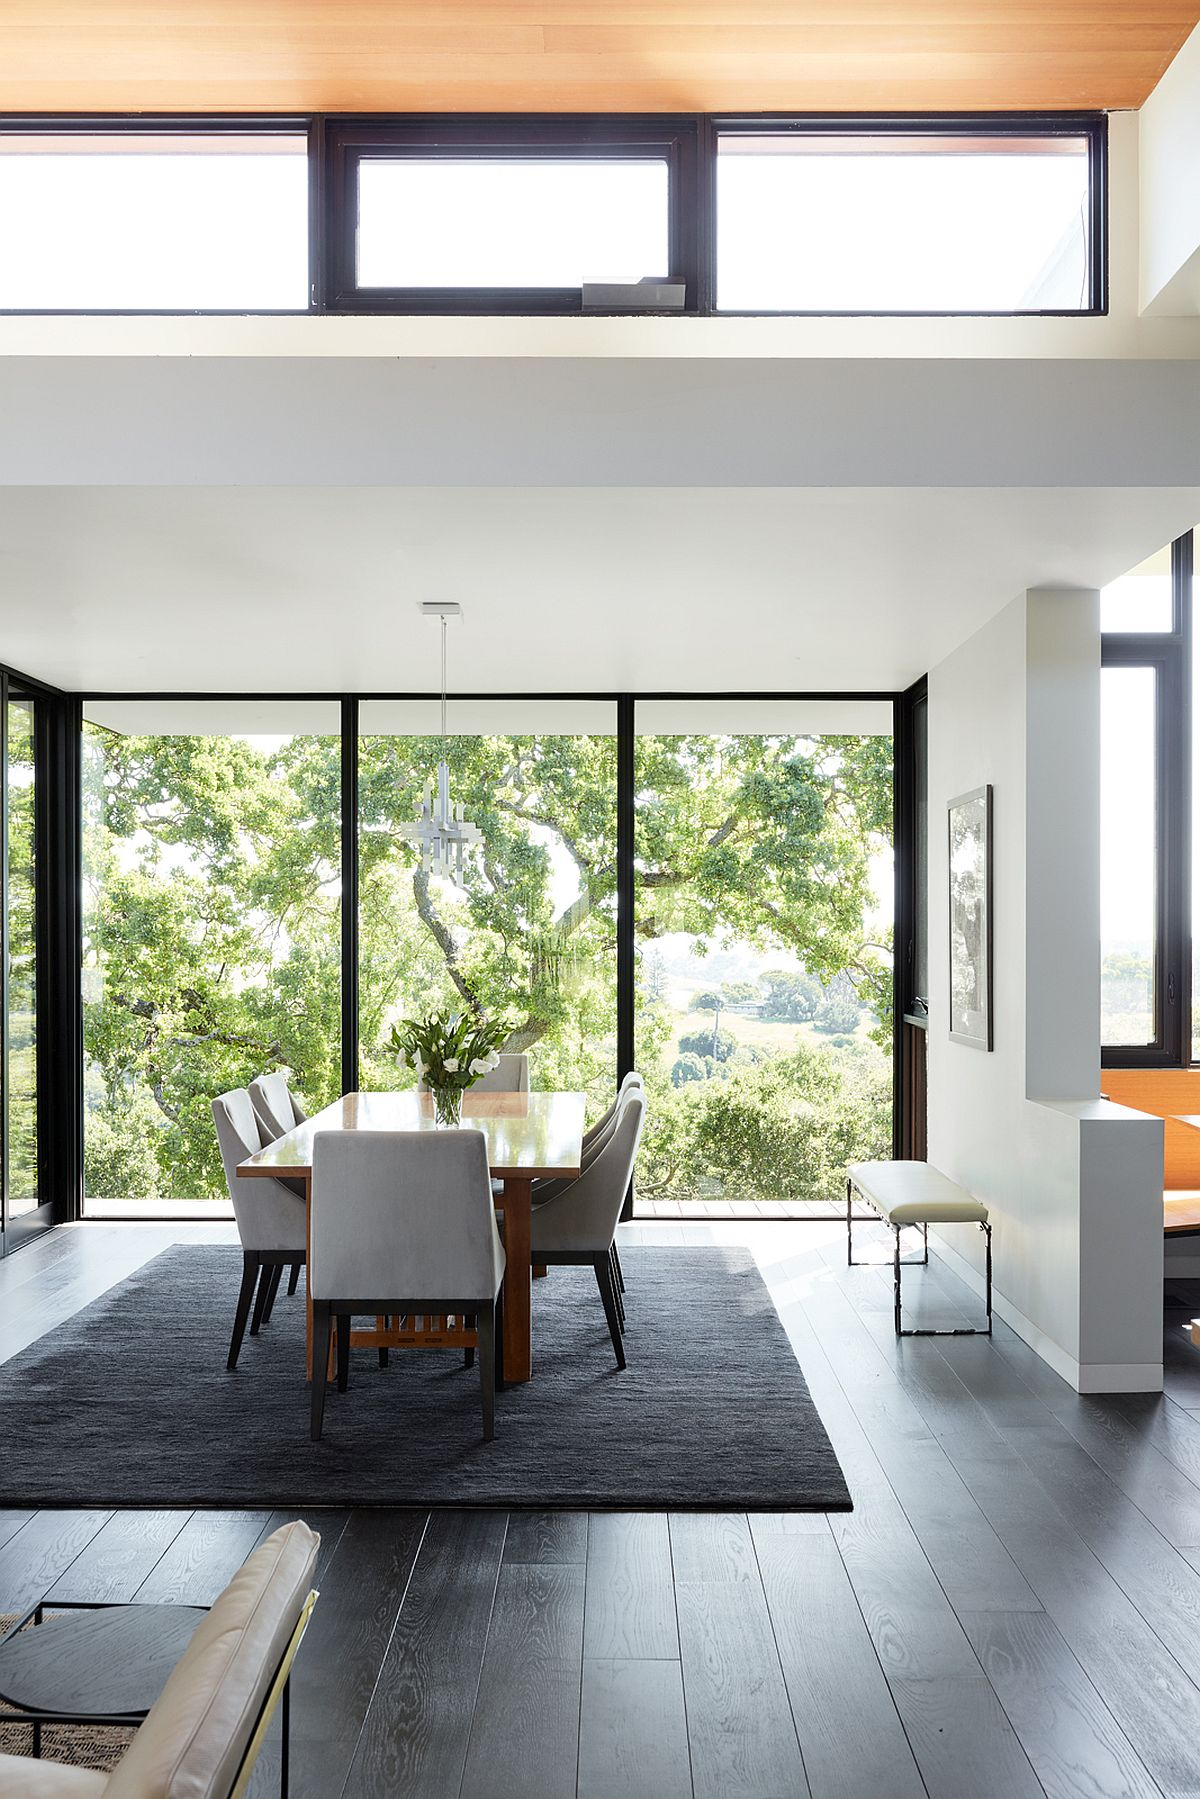 Spacious double-height dining area with a view of the woods outside